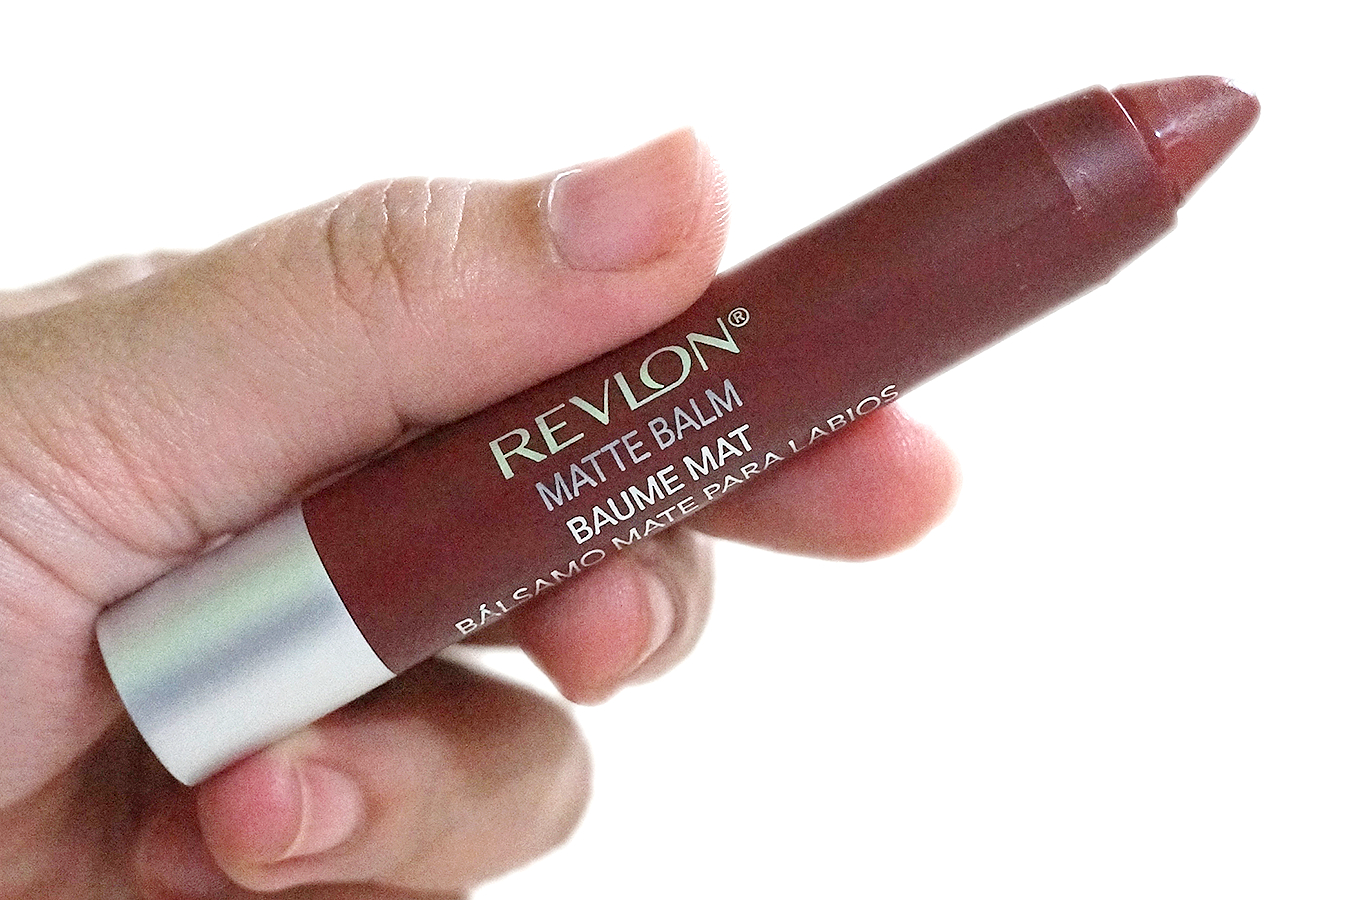 revlon matte balm fierce review